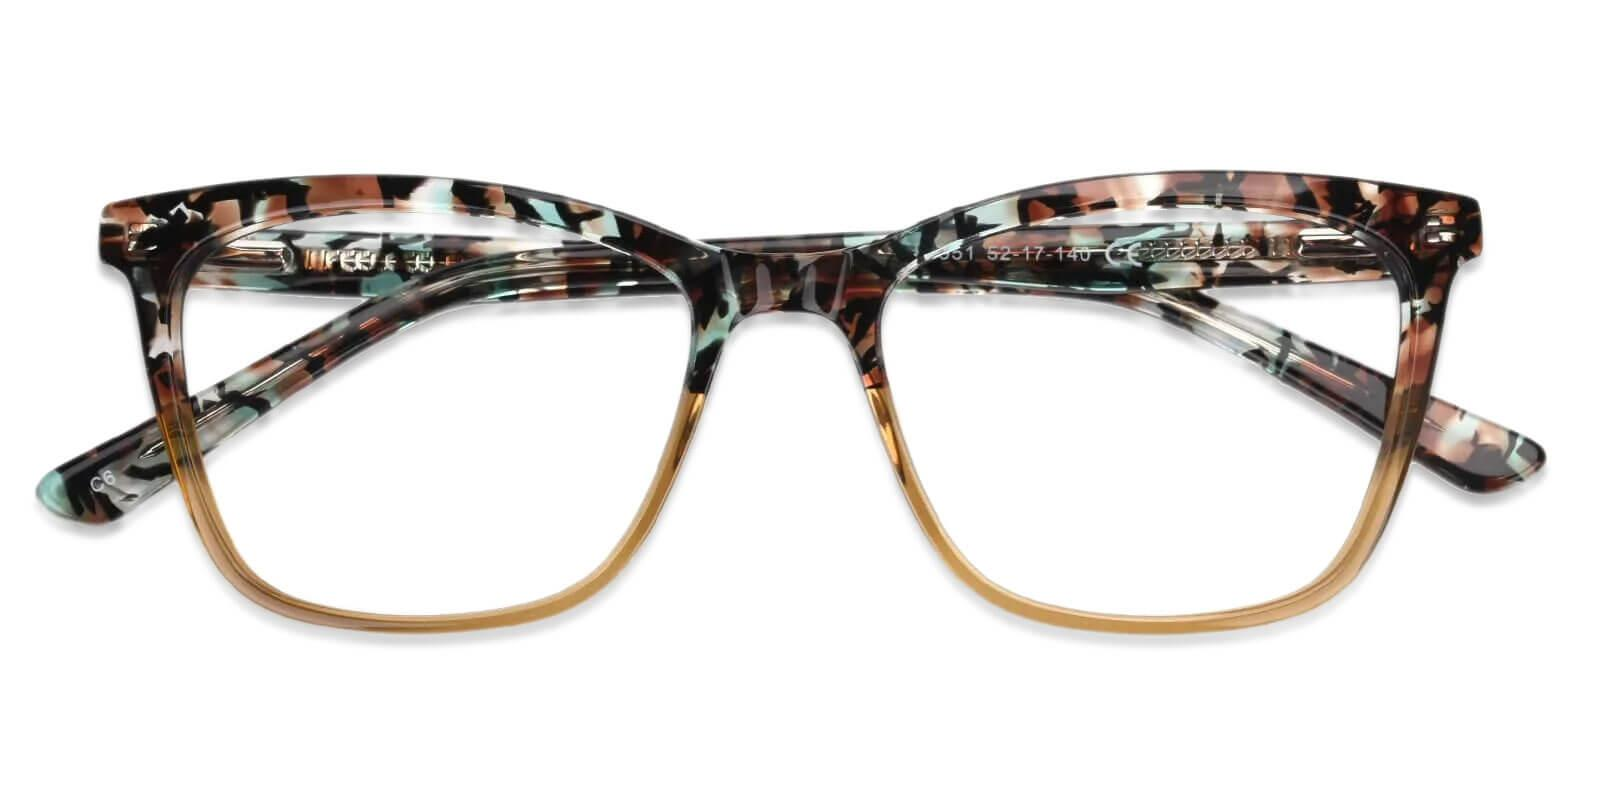 Masser Yellow Acetate Eyeglasses , UniversalBridgeFit Frames from ABBE Glasses